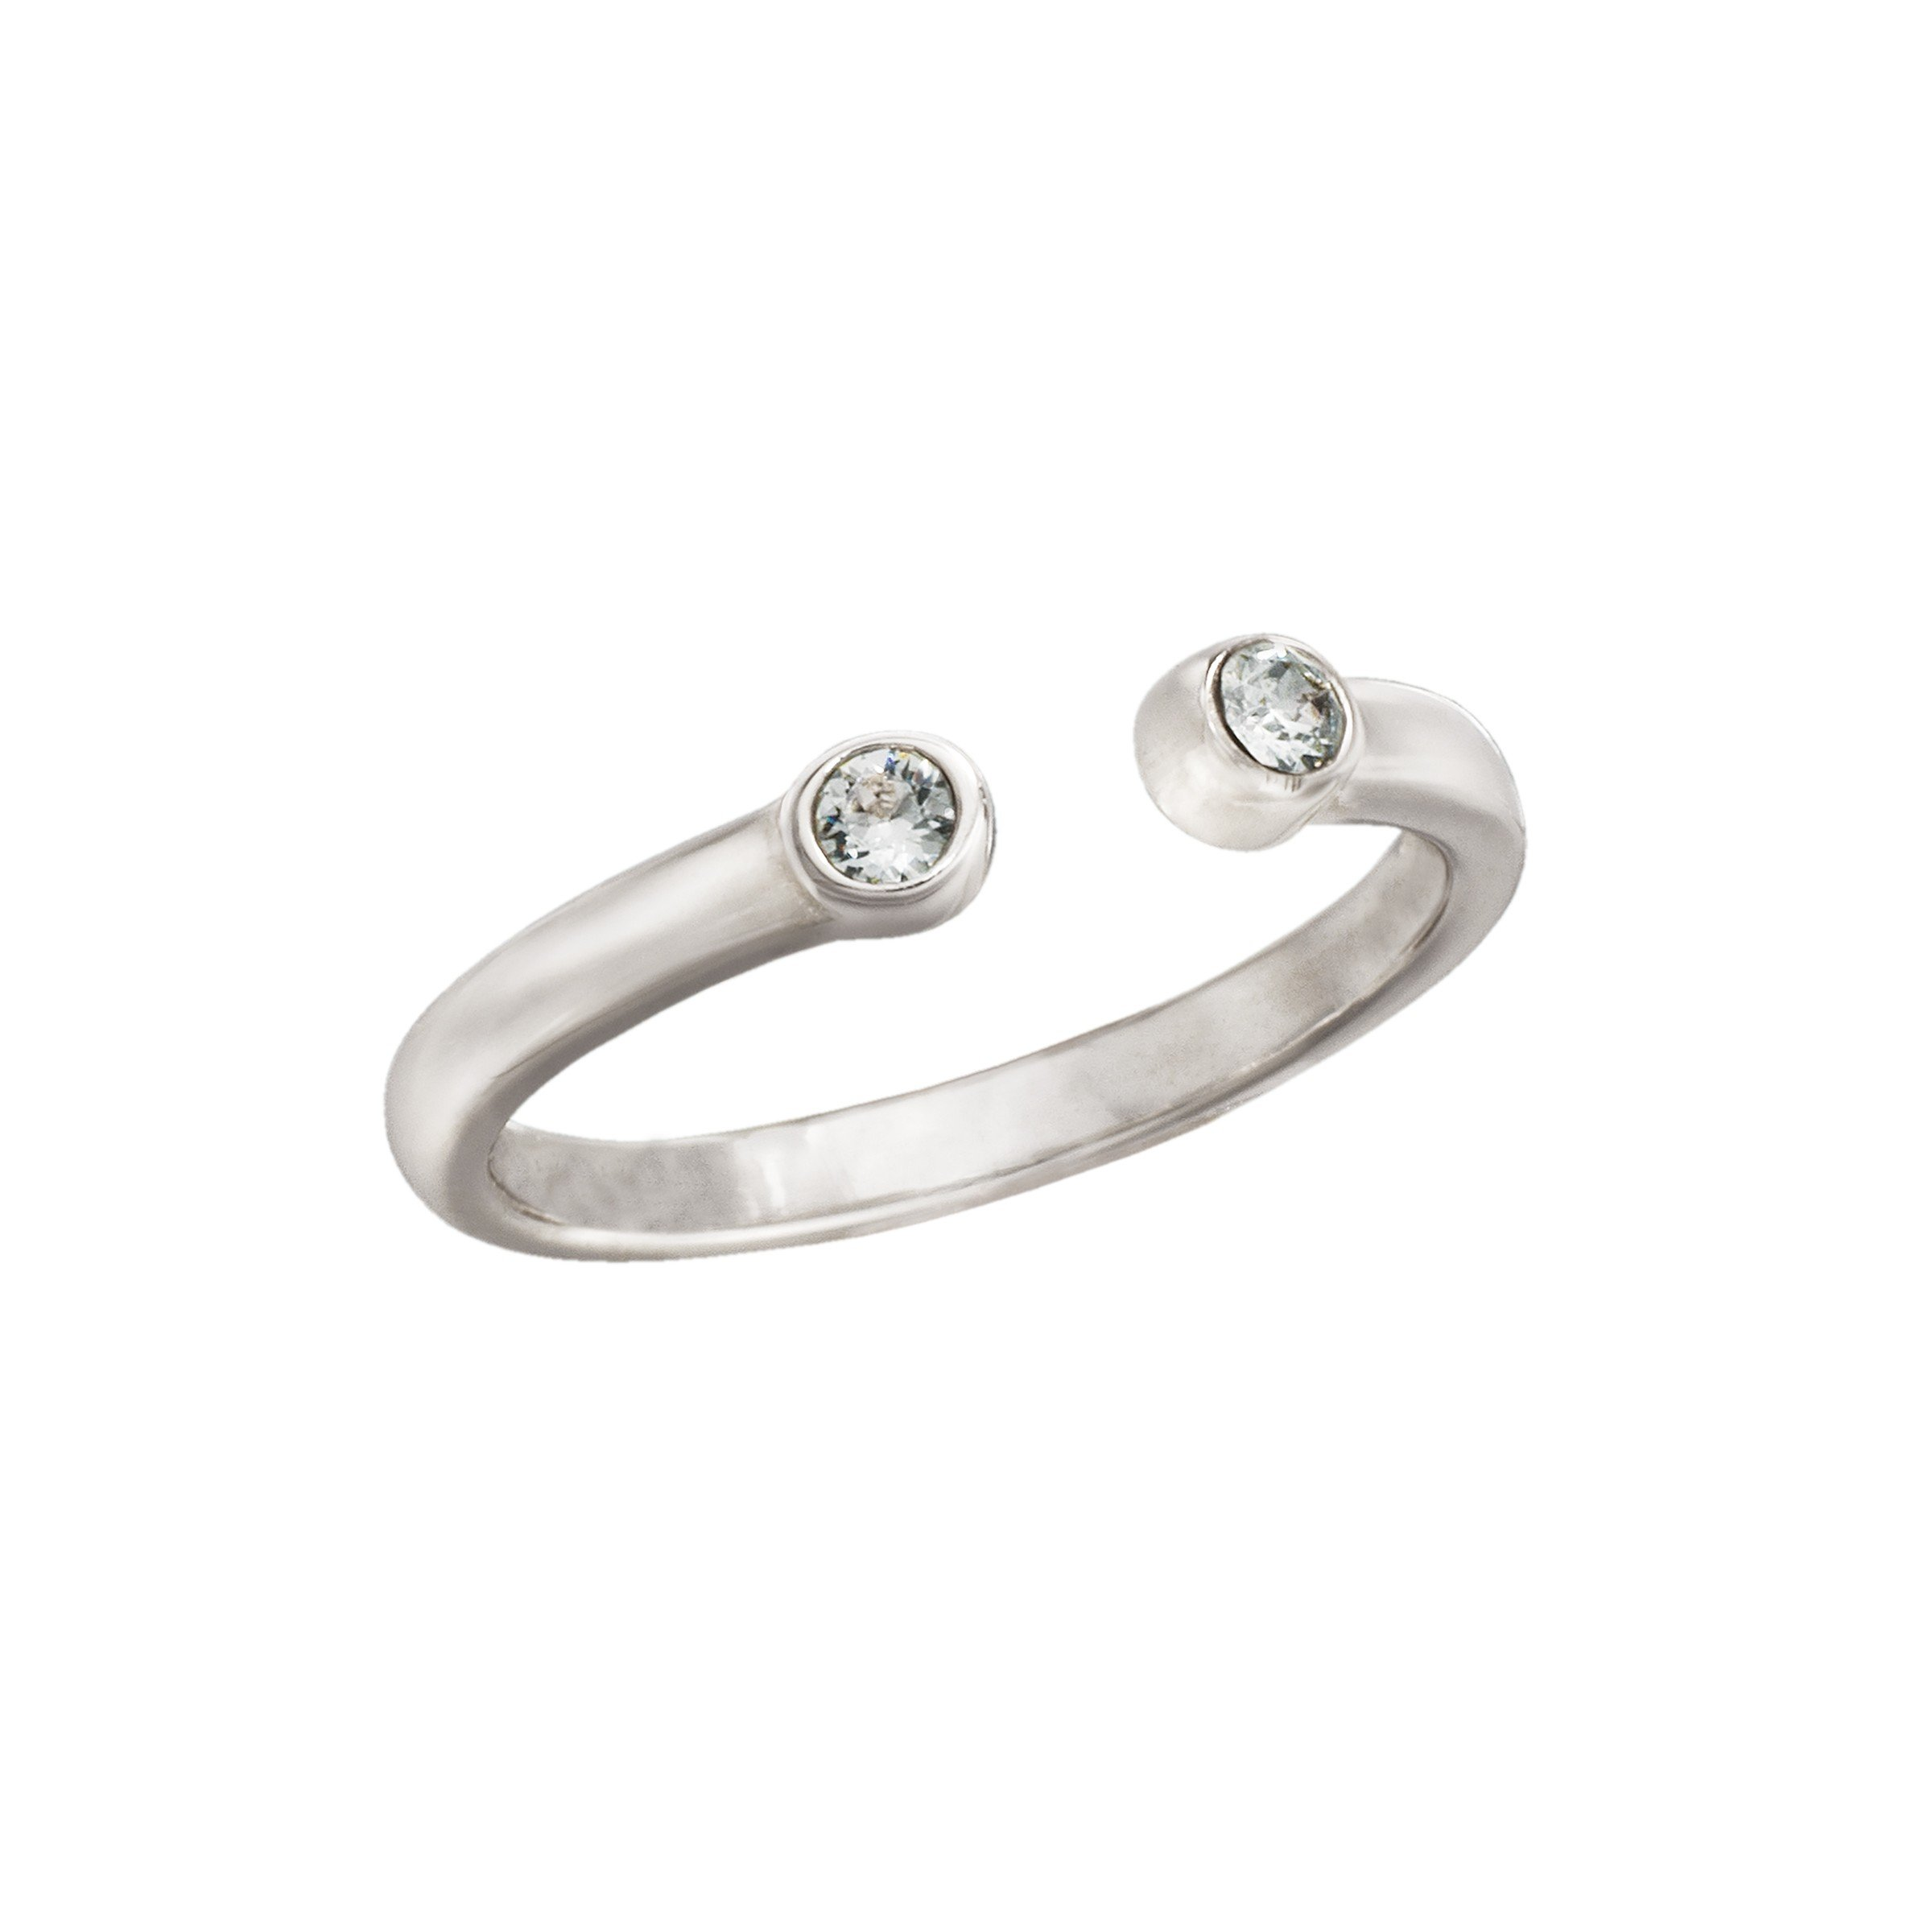 Silpada 'Bling' Midi Ring with Swarovski Crystals in Sterling Silver